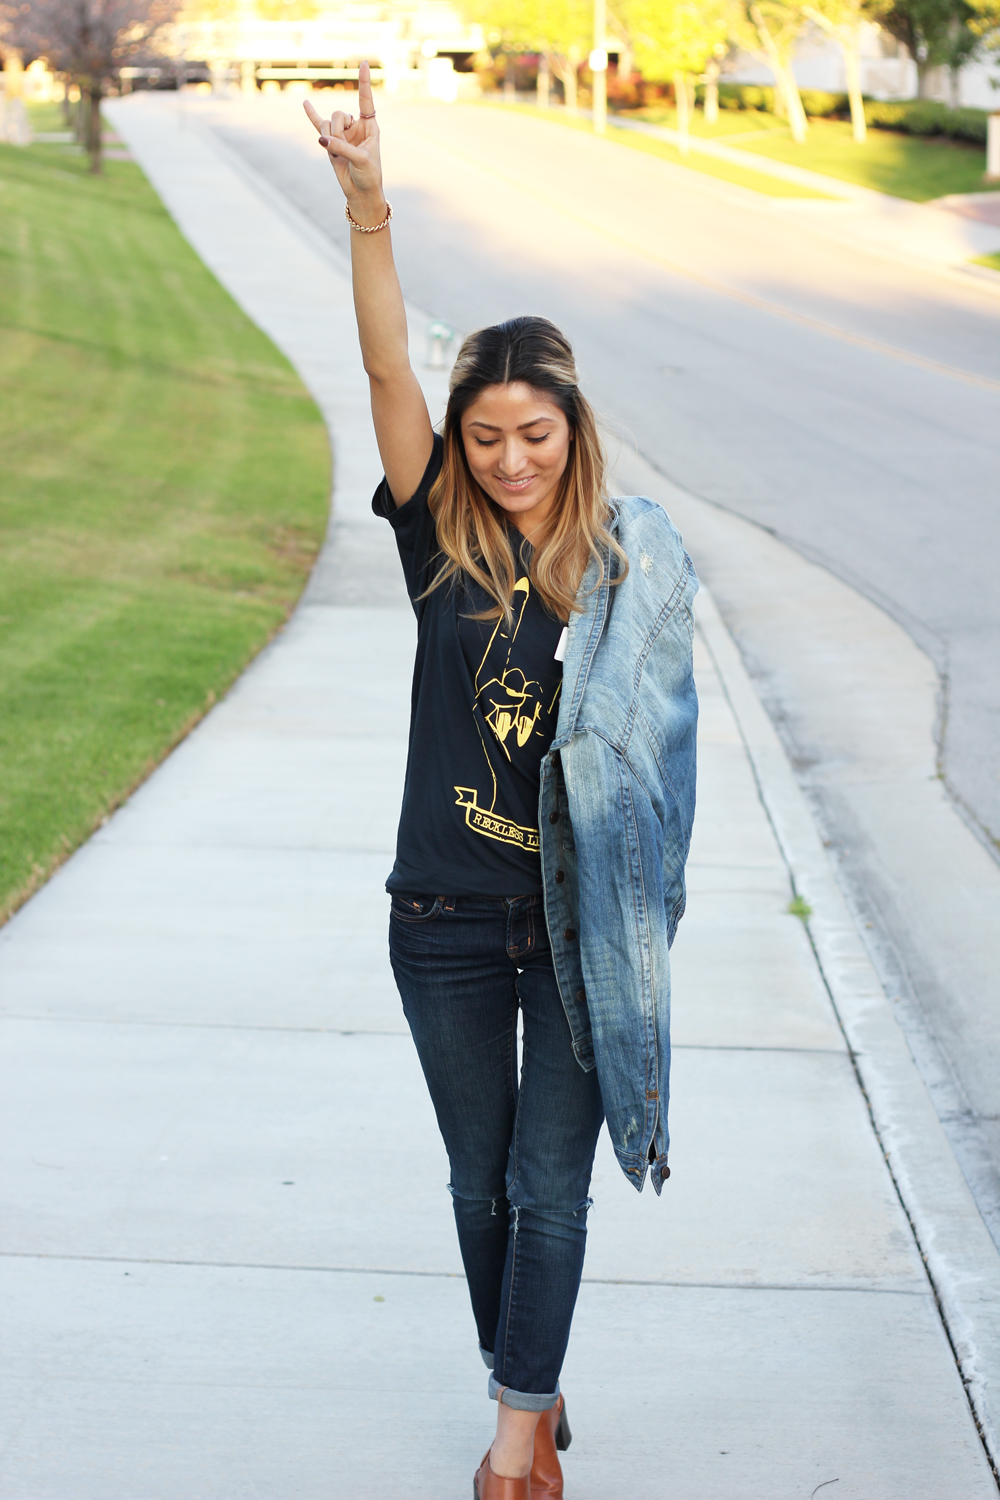 Reckless Livin LA Clique, OOTD, Outfit, Coachella, Weekend, Friday, Casual, Denim, Tee, Street Style, Trending